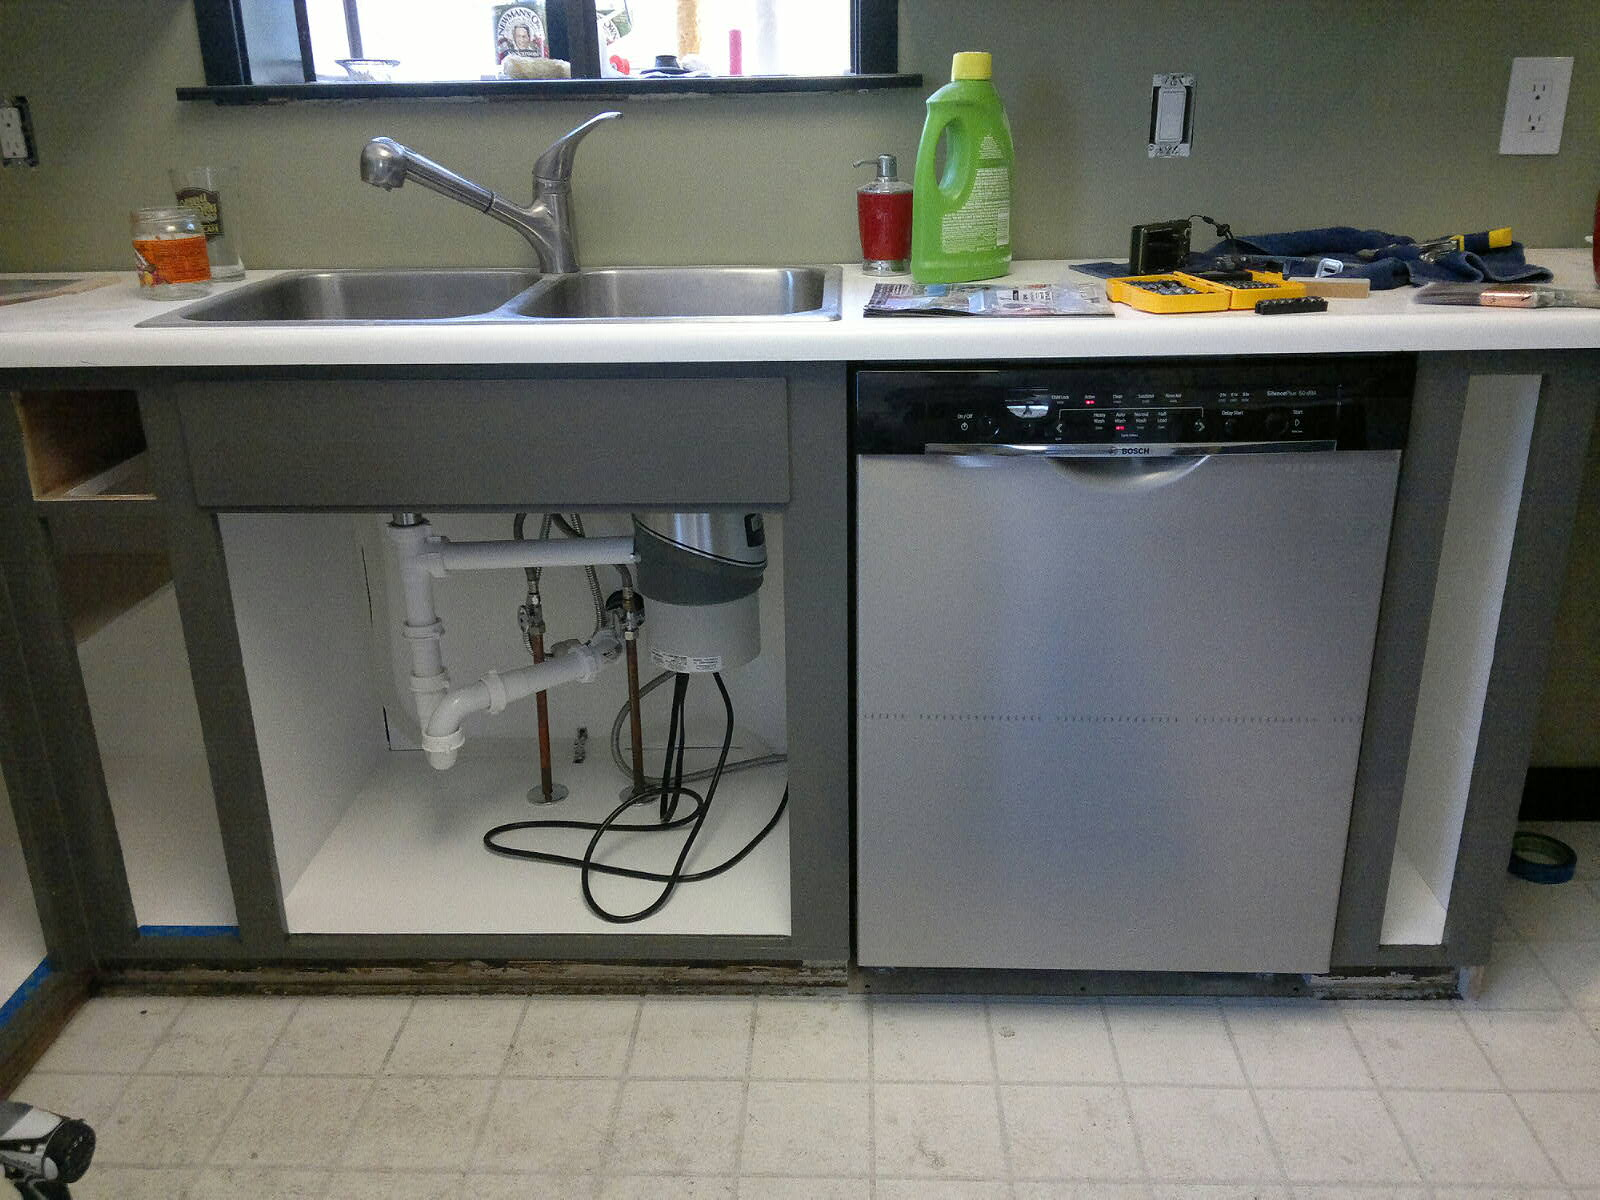 Countertop Dishwasher In Cabinet : ... House: Installing A Full Size Dishwasher In Old Shallow Cabinets